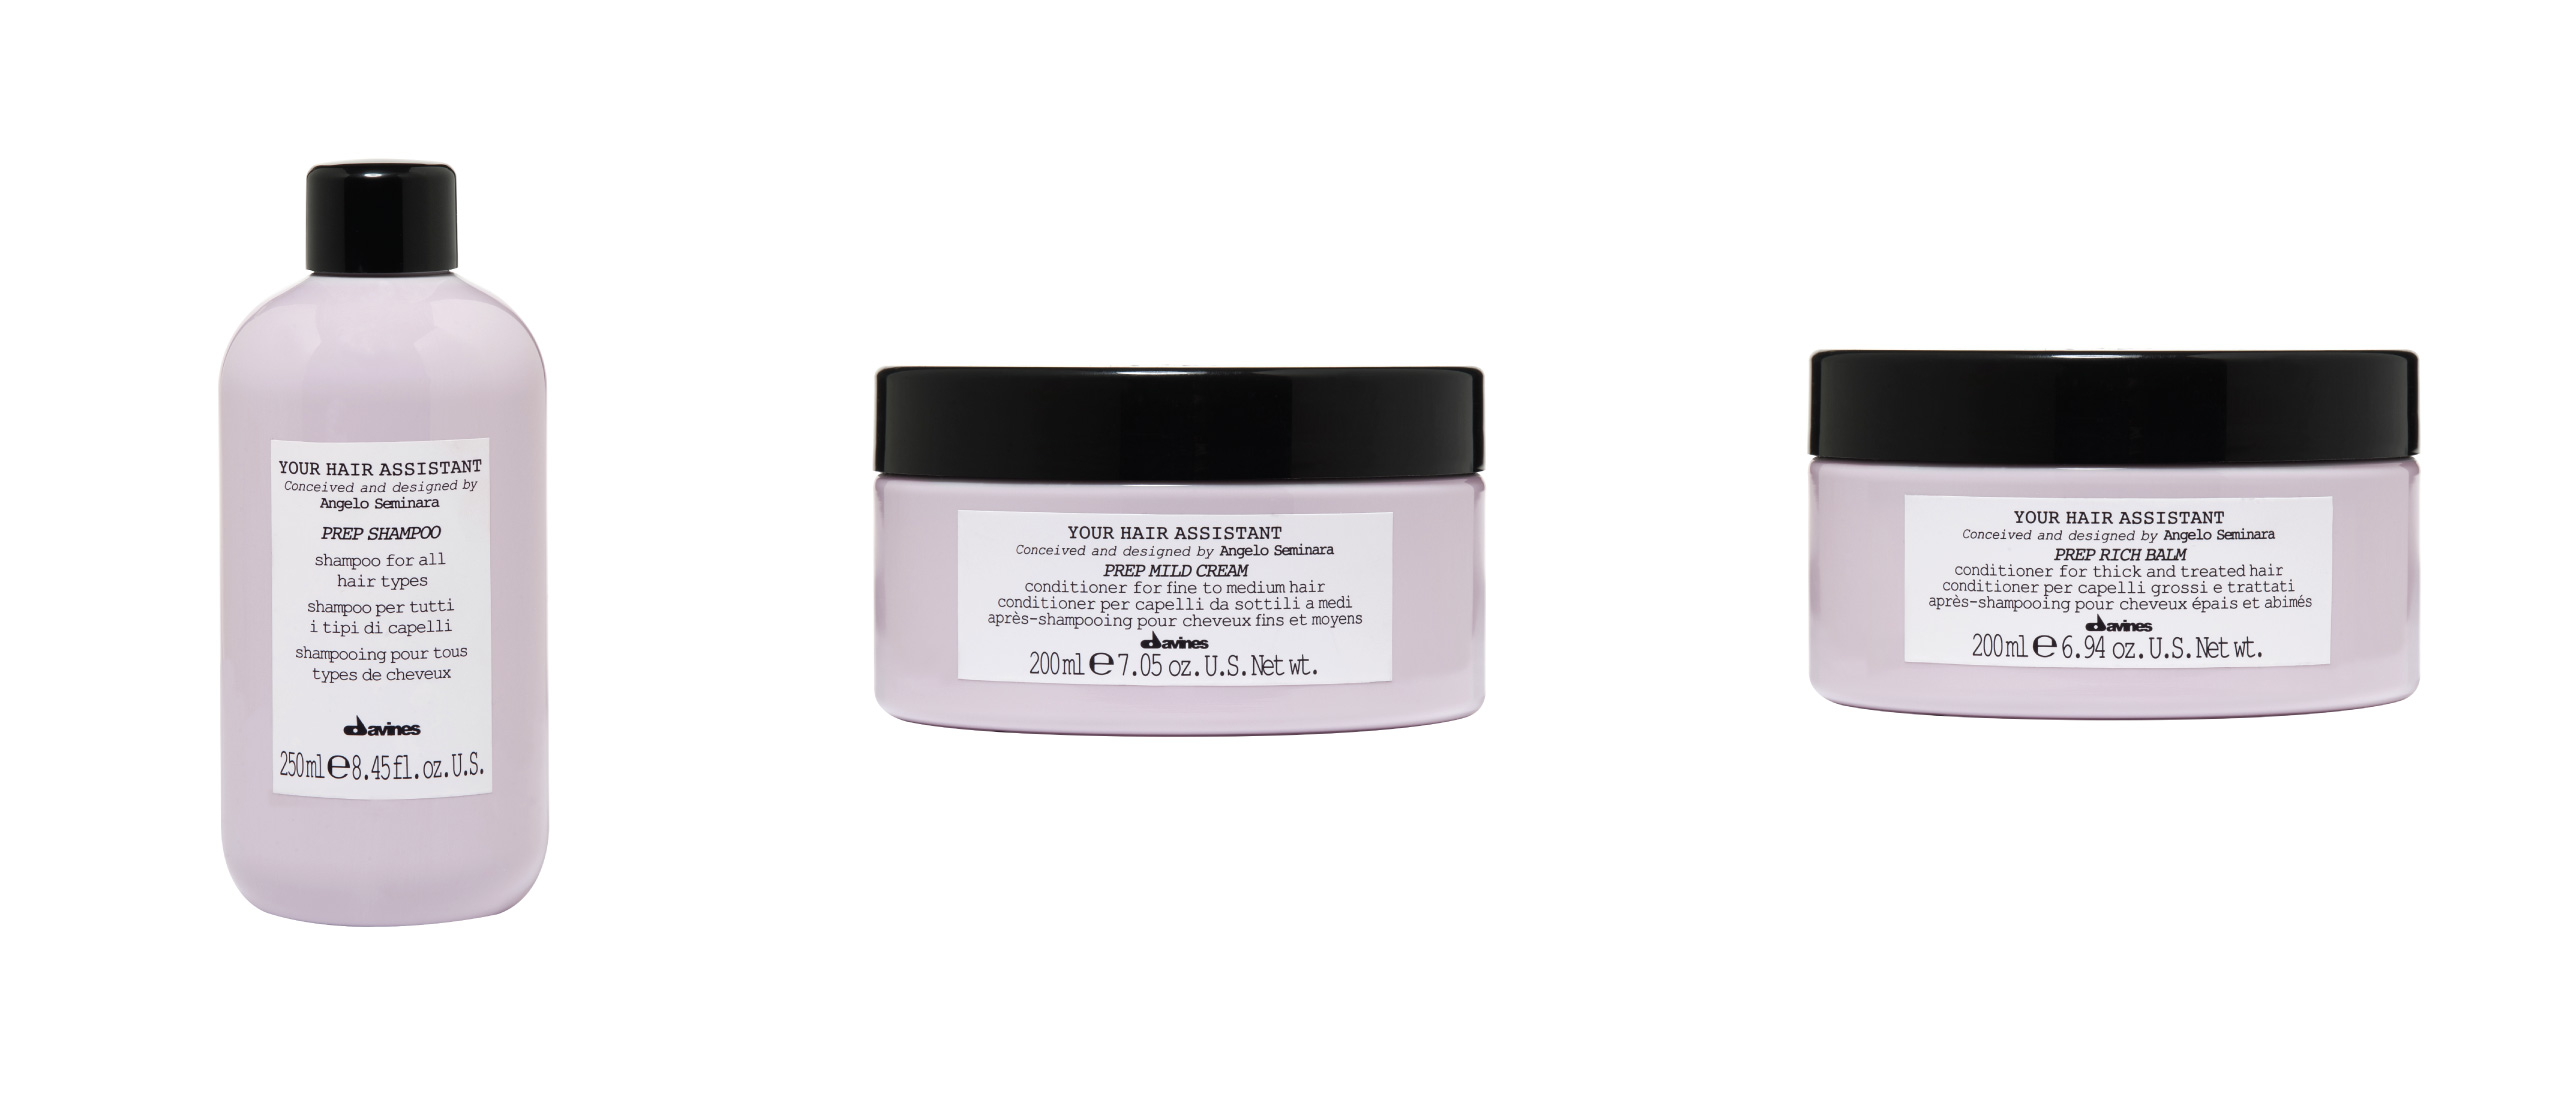 Davines Your Hair Assistant Prep Products